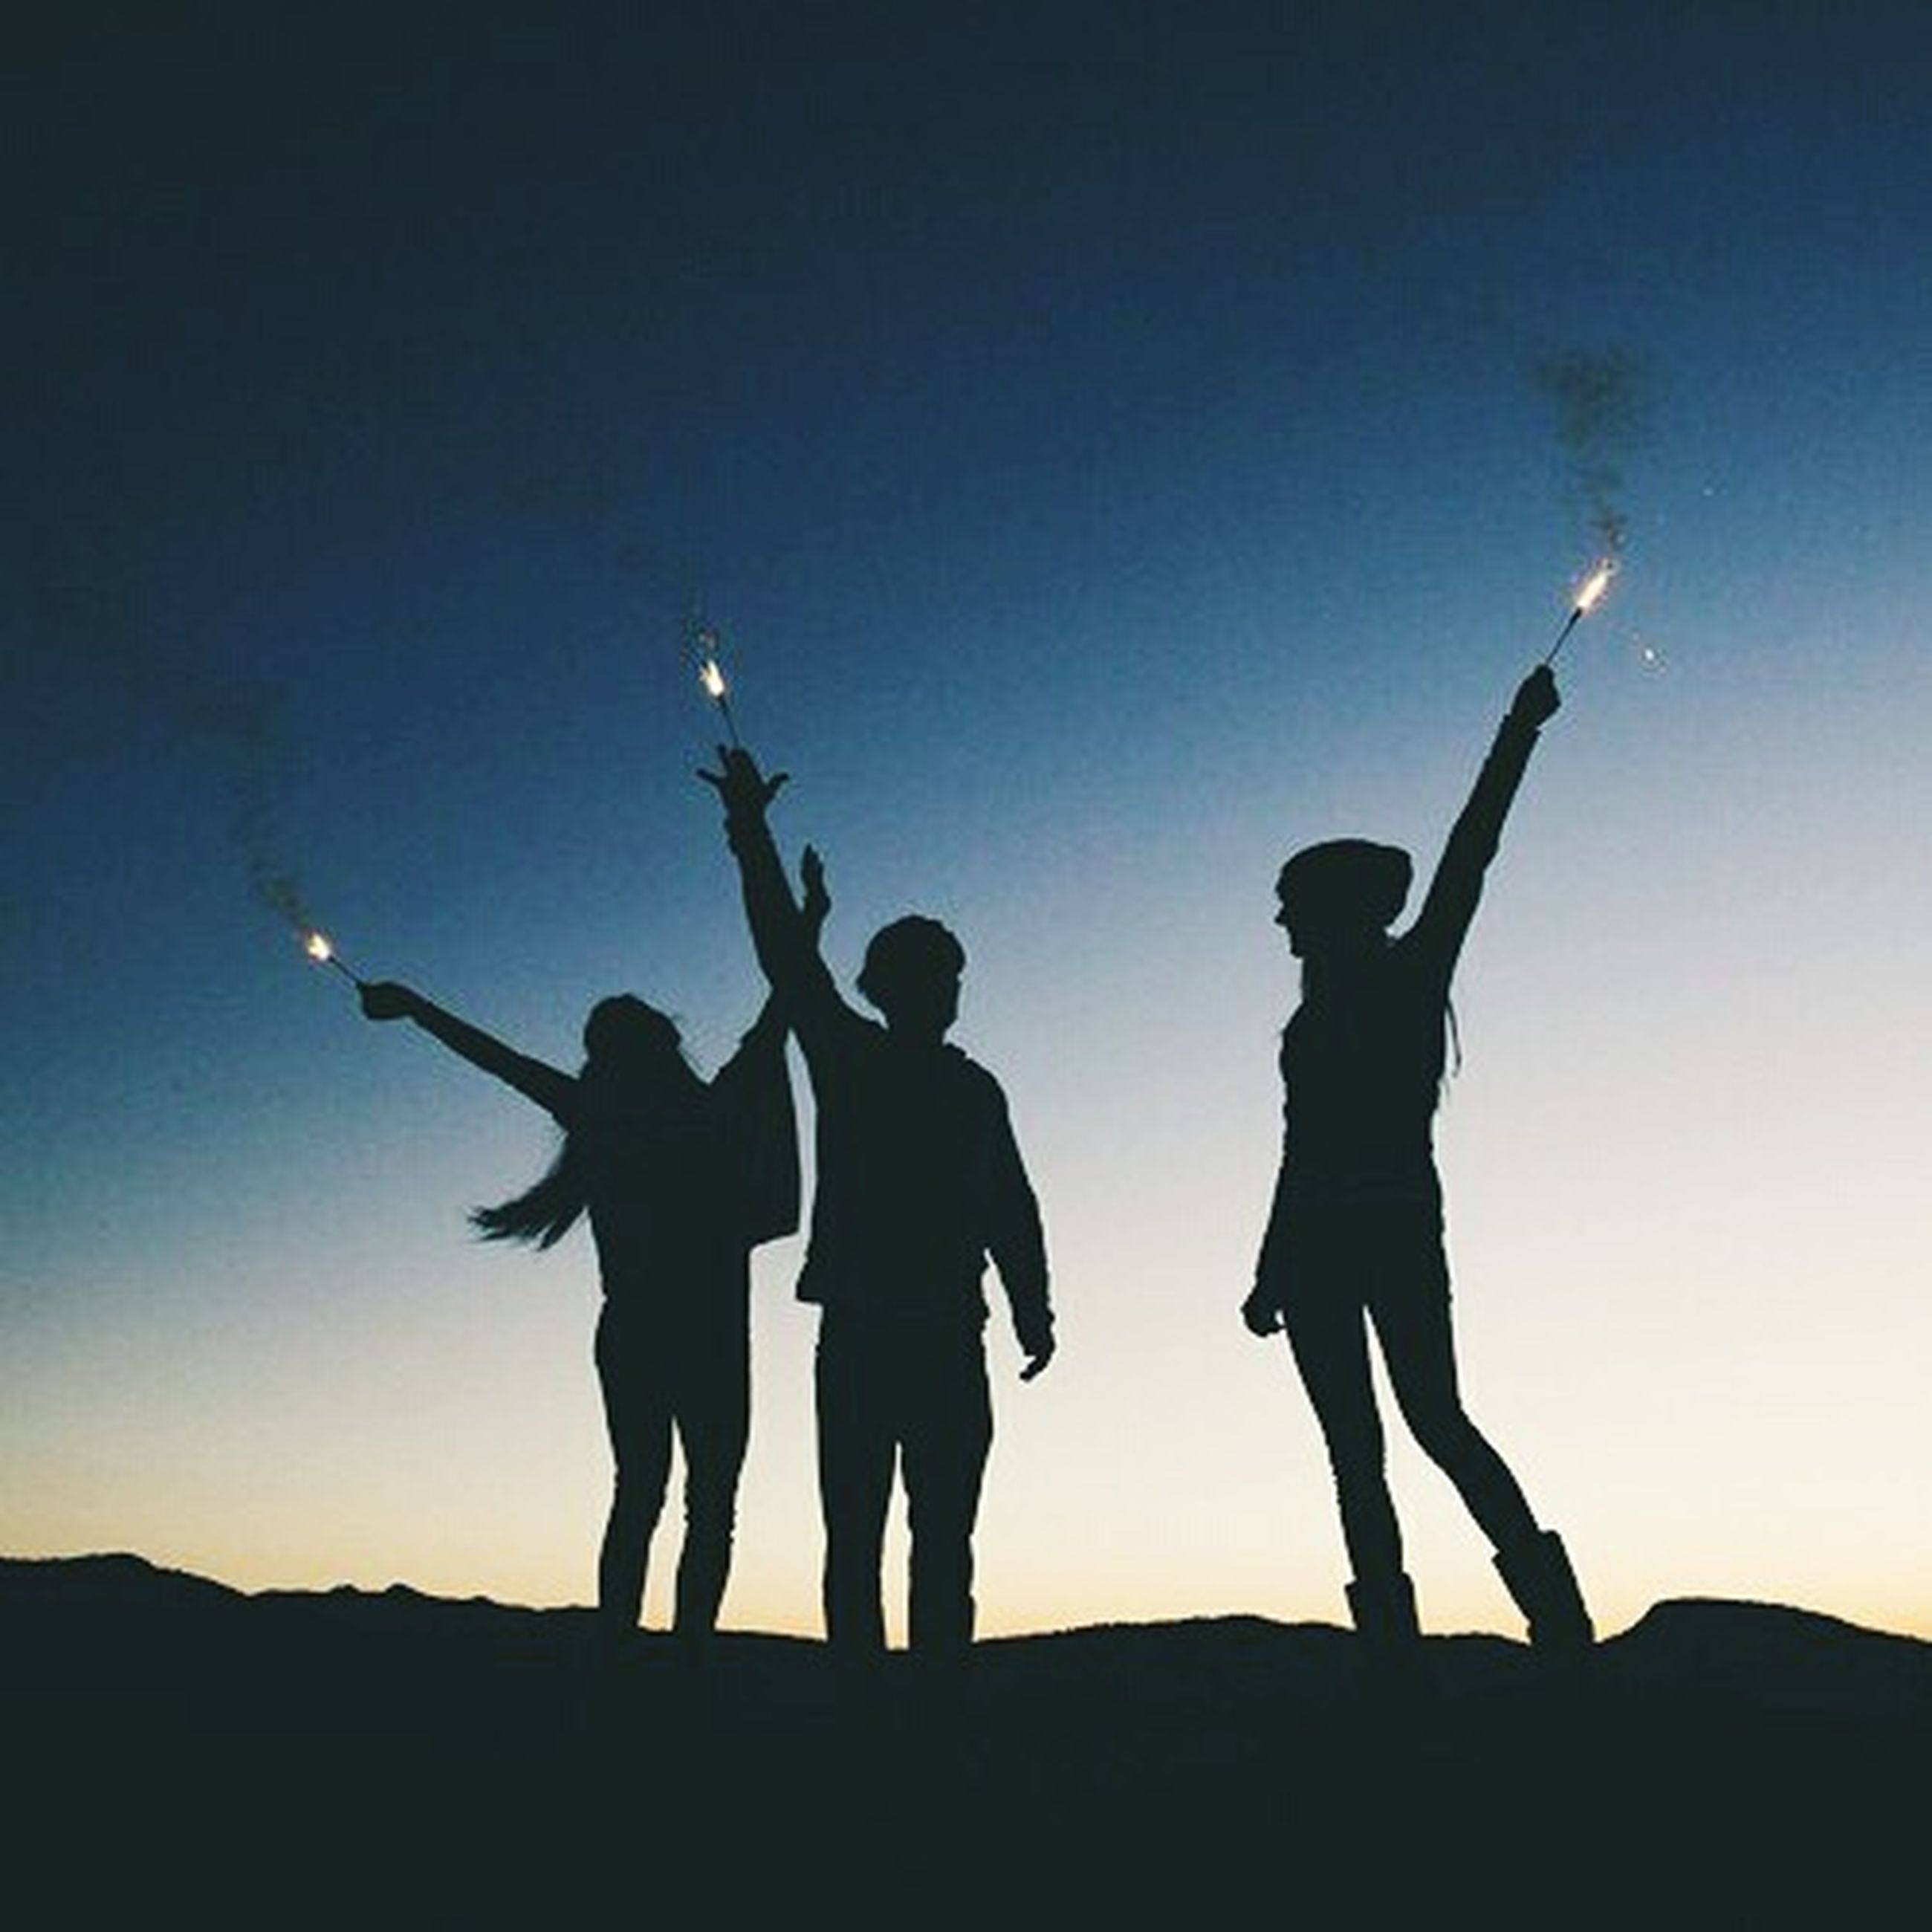 silhouette, men, togetherness, lifestyles, leisure activity, standing, full length, copy space, sky, bonding, clear sky, friendship, sunset, person, low angle view, love, blue